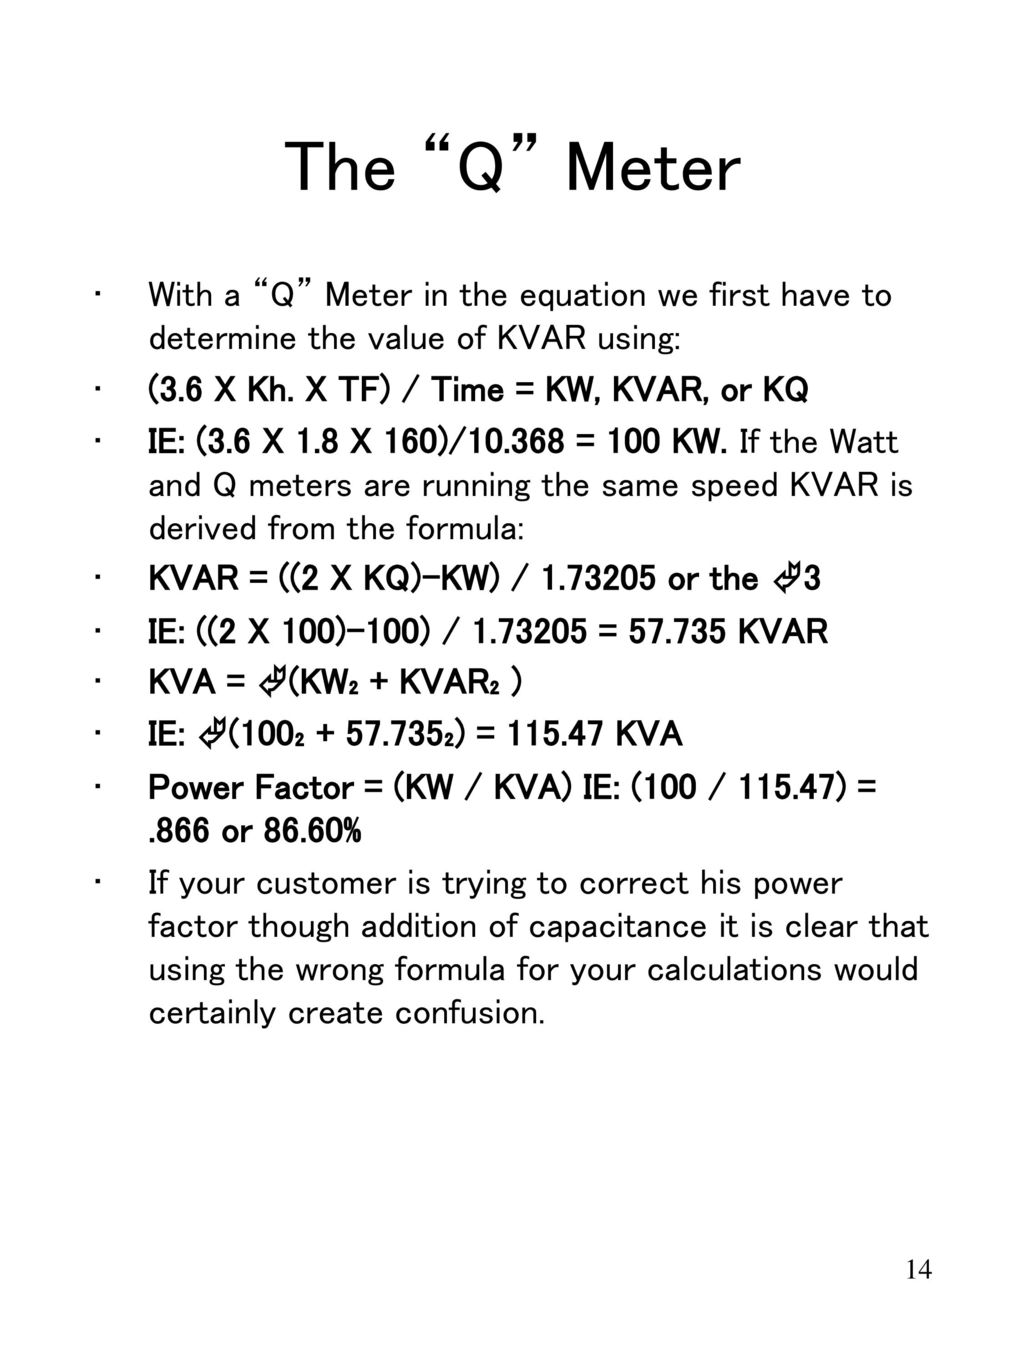 Metering In Todays World Ppt Download Q Meter Circuit Diagram The With A Equation We First Have To Determine